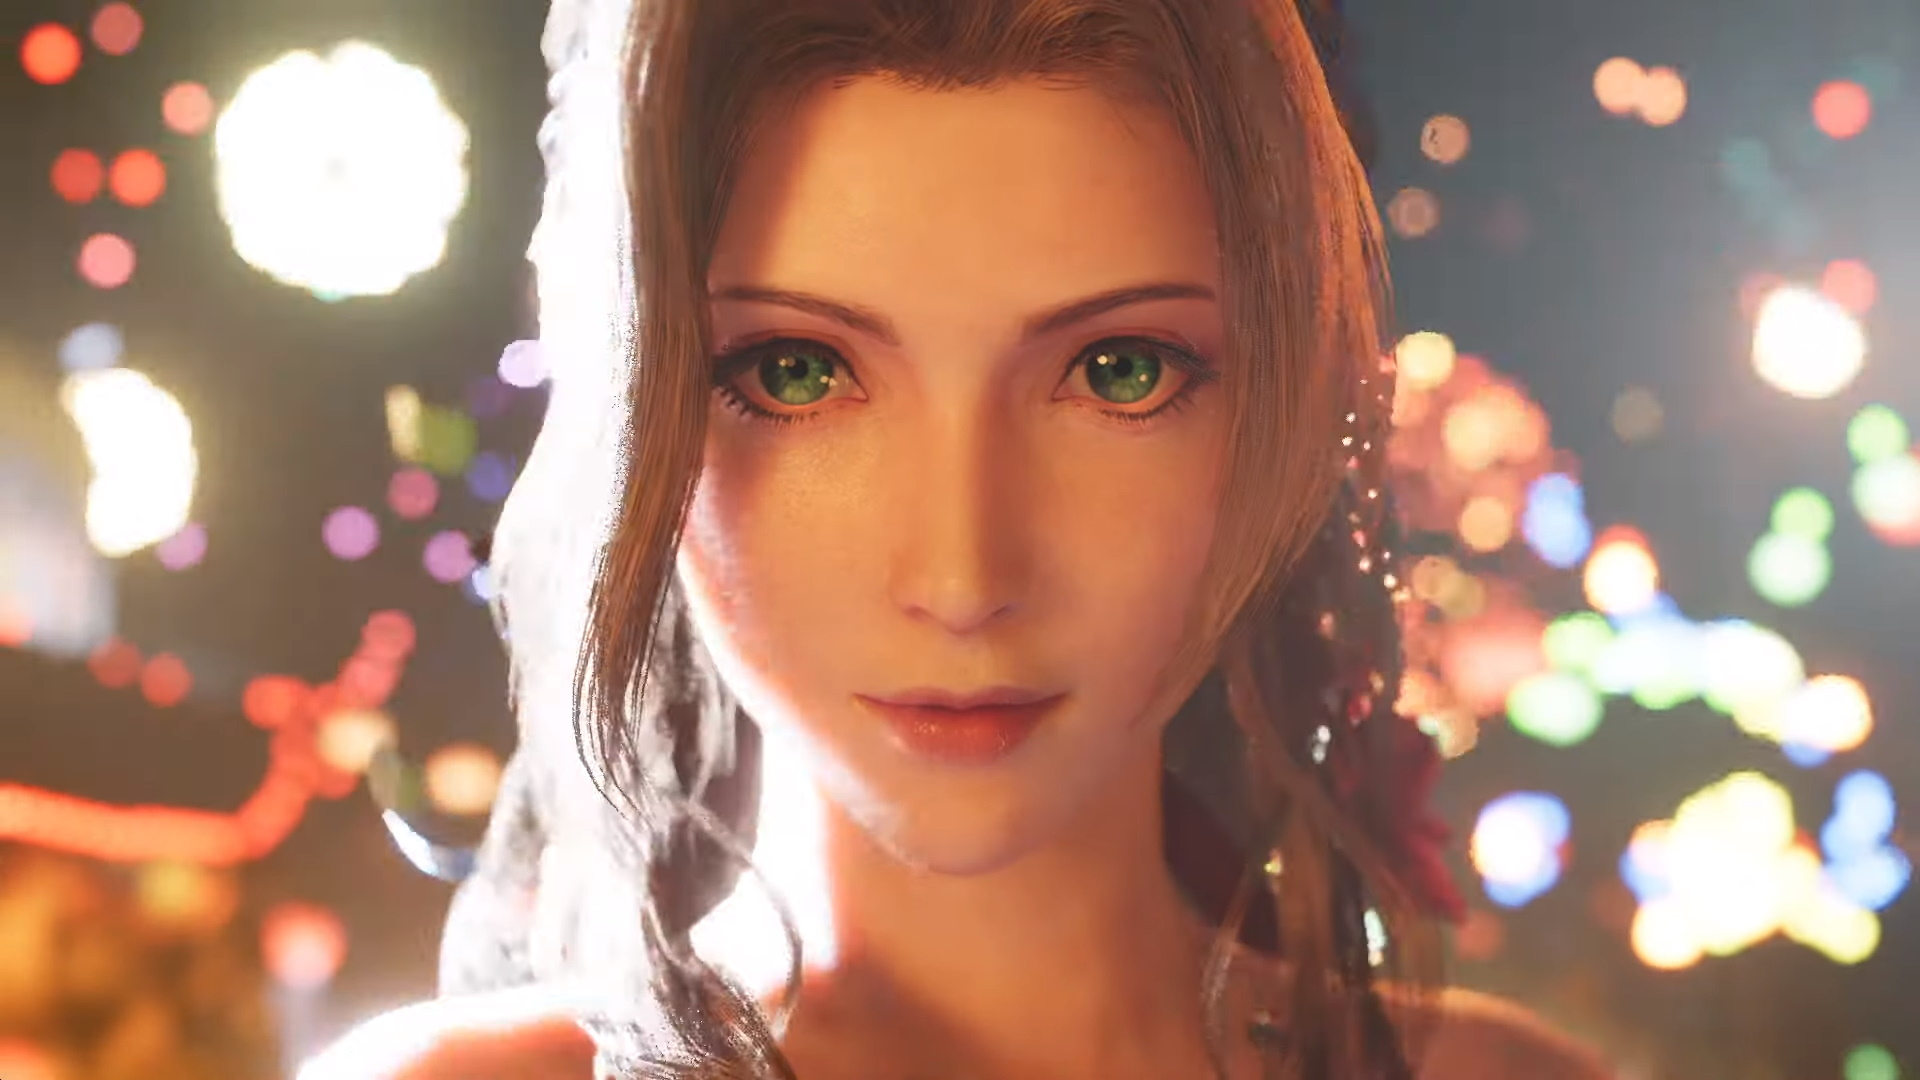 TGS 2019: Final Fantasy VII Remake's latest trailer shows off the Turks and new mini games